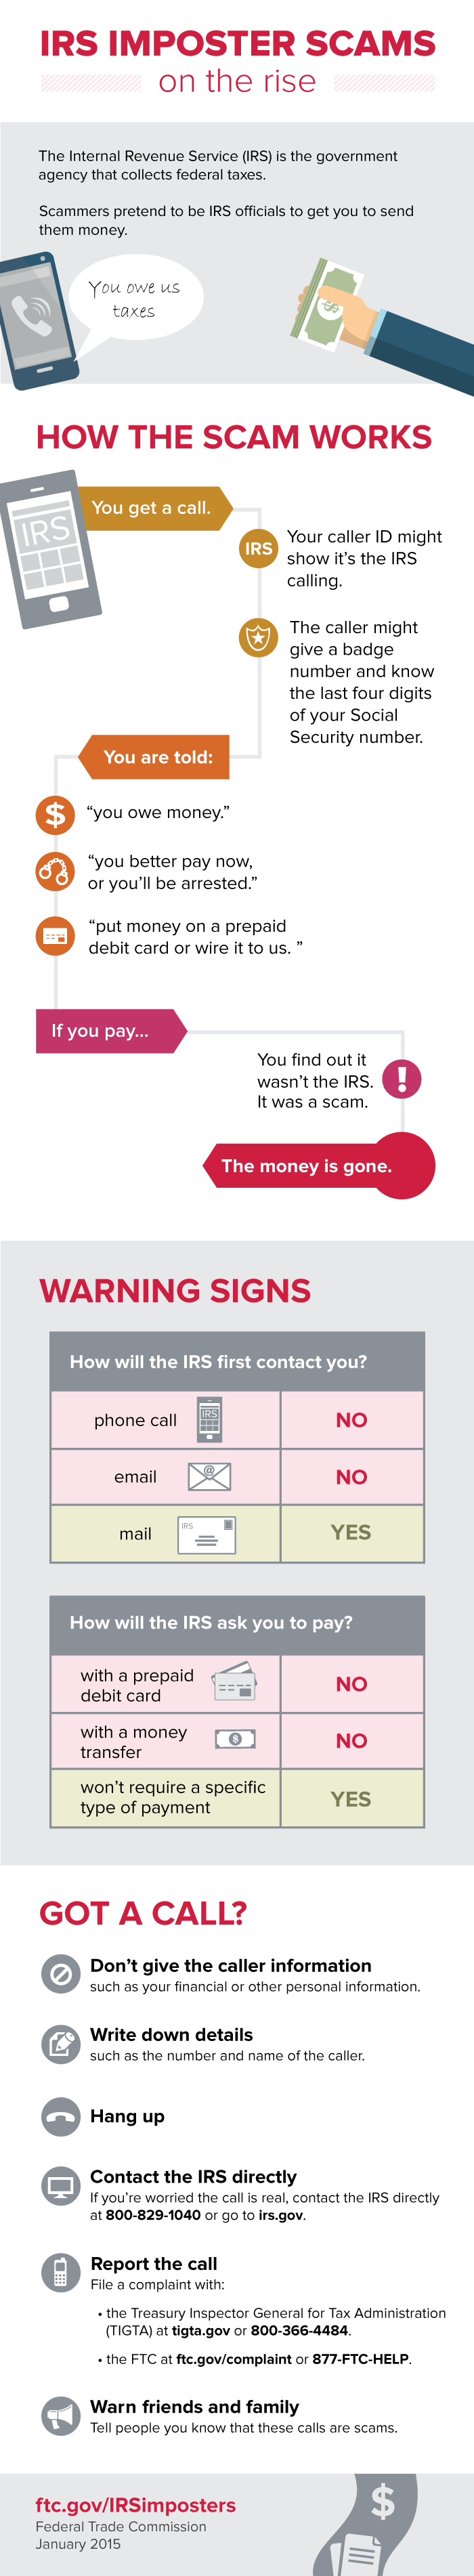 FTC Infograph of the IRS Imposter Scam - Call the Federal Trade Commission (FTC) at (877)-FTC-HELP for more information.